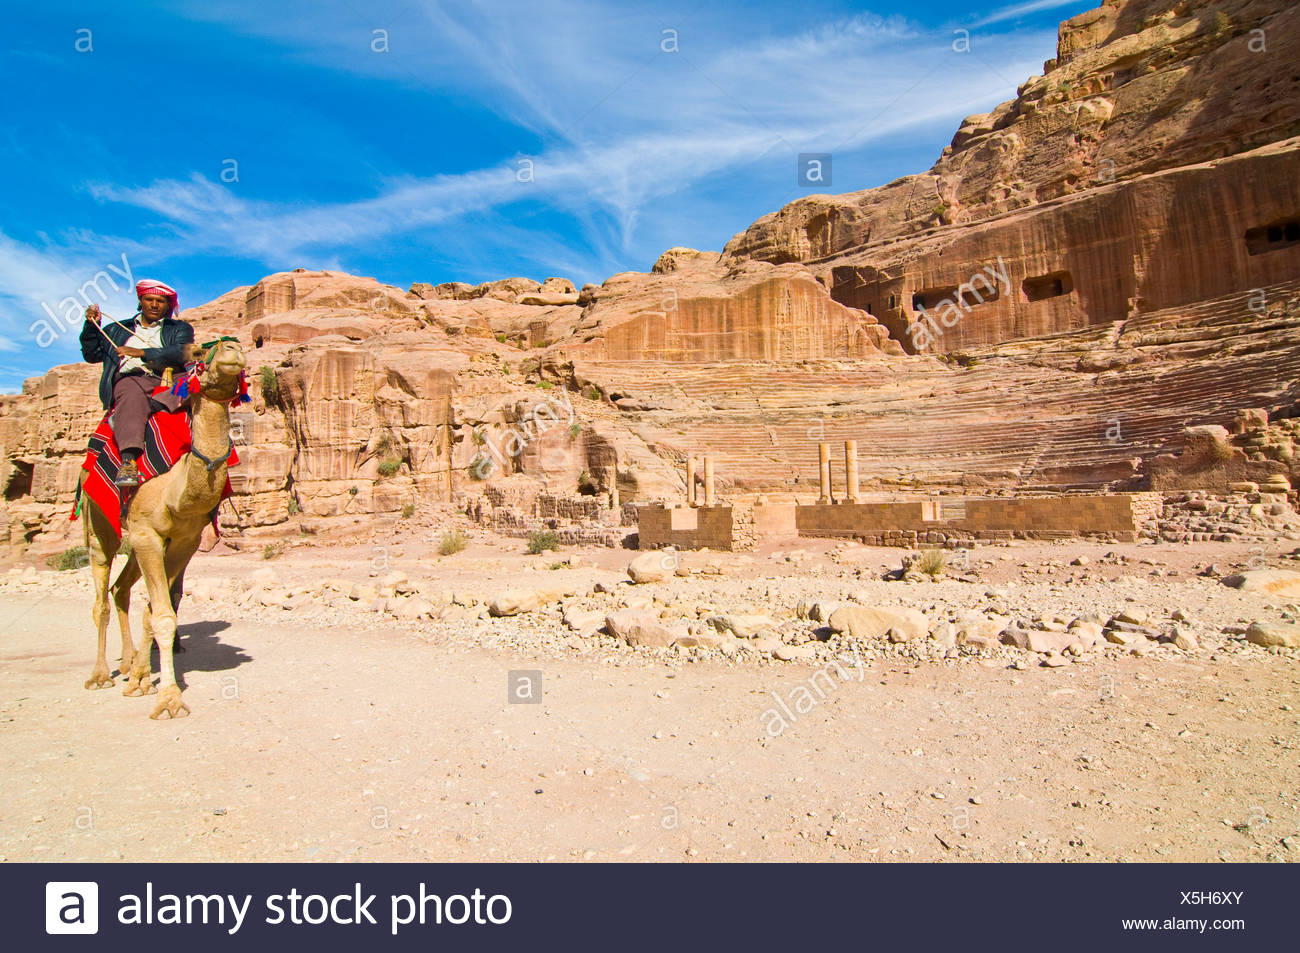 Man riding a camel, Petra, Jordan, Middle East Stock Photo